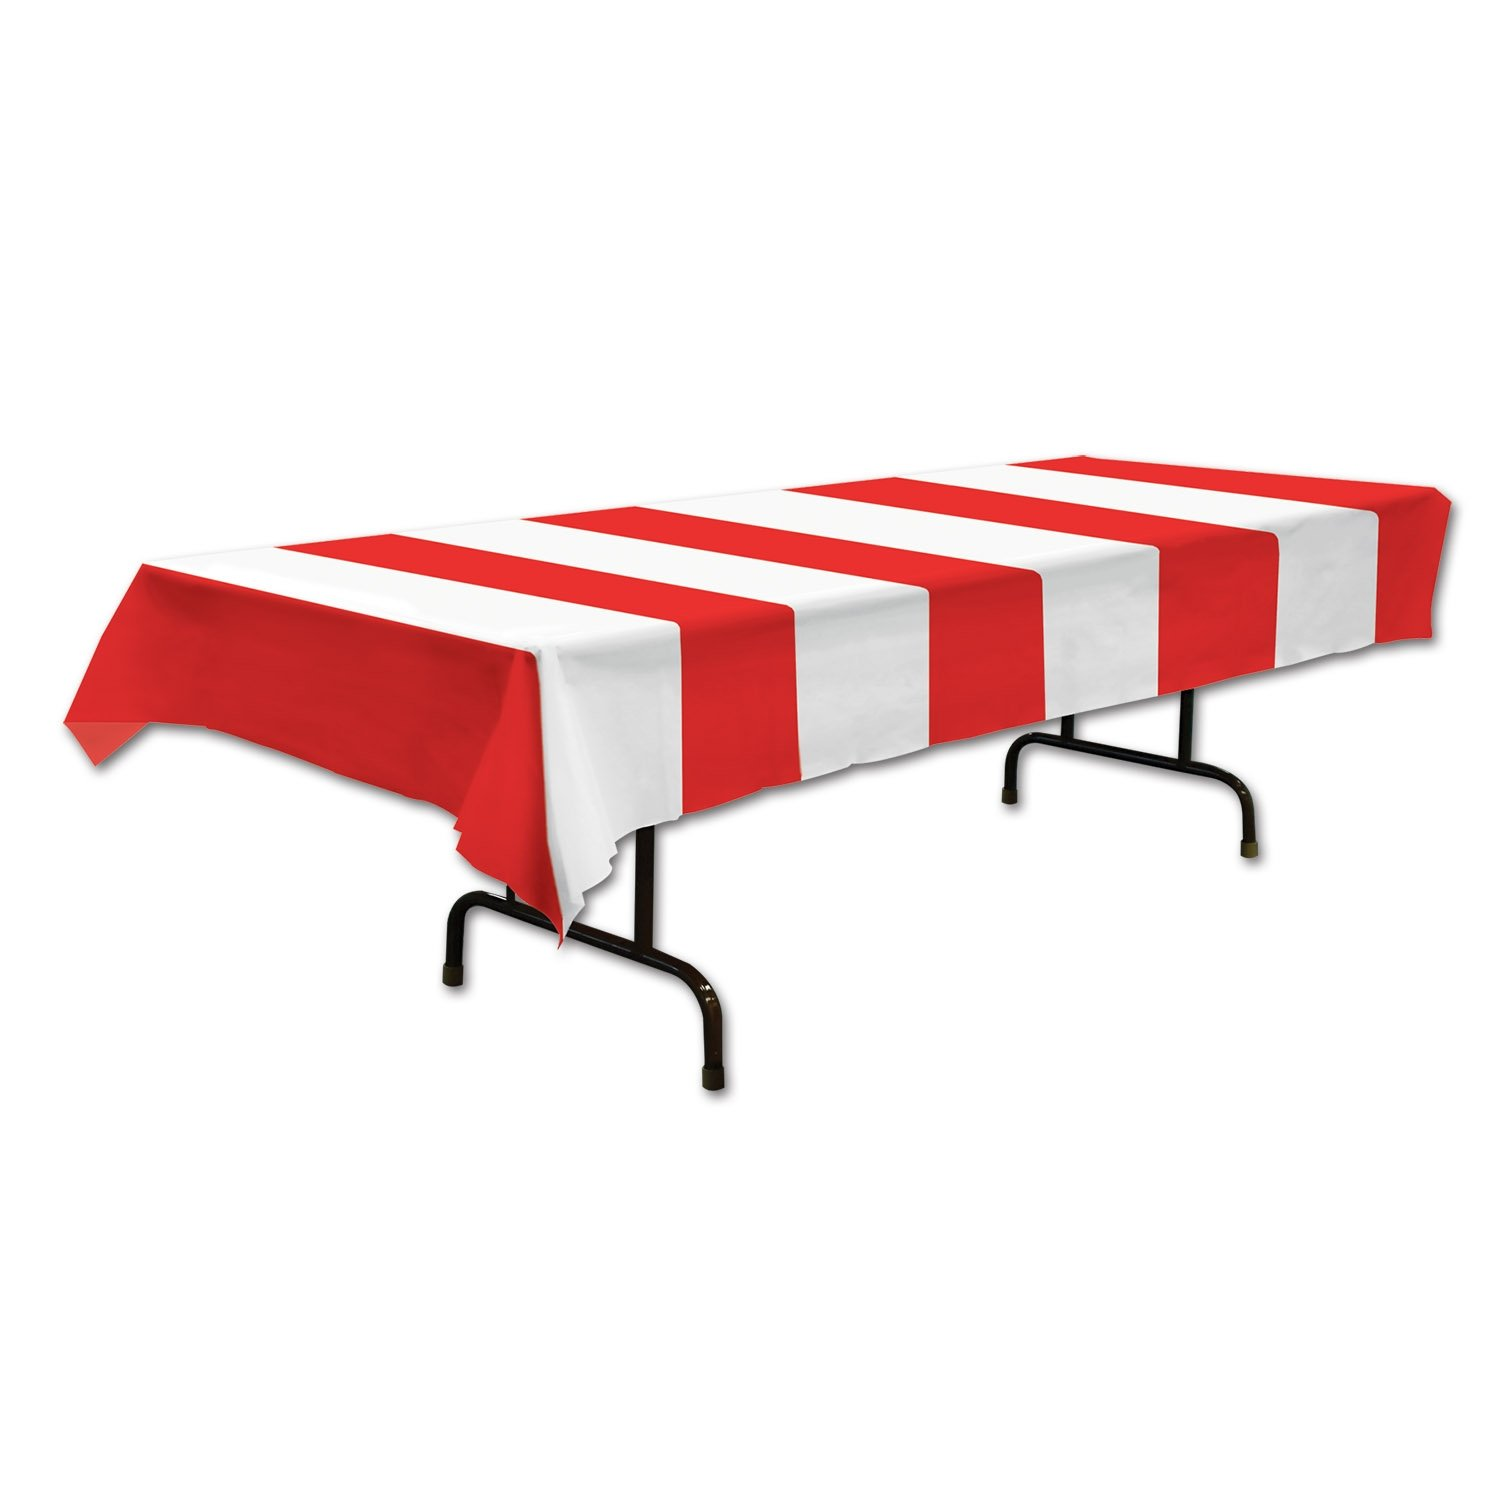 Merveilleux Amazon.com: Red U0026 White Stripes Tablecover Party Accessory (1 Count)  (1/Pkg): Christmas Party Decorations: Kitchen U0026 Dining